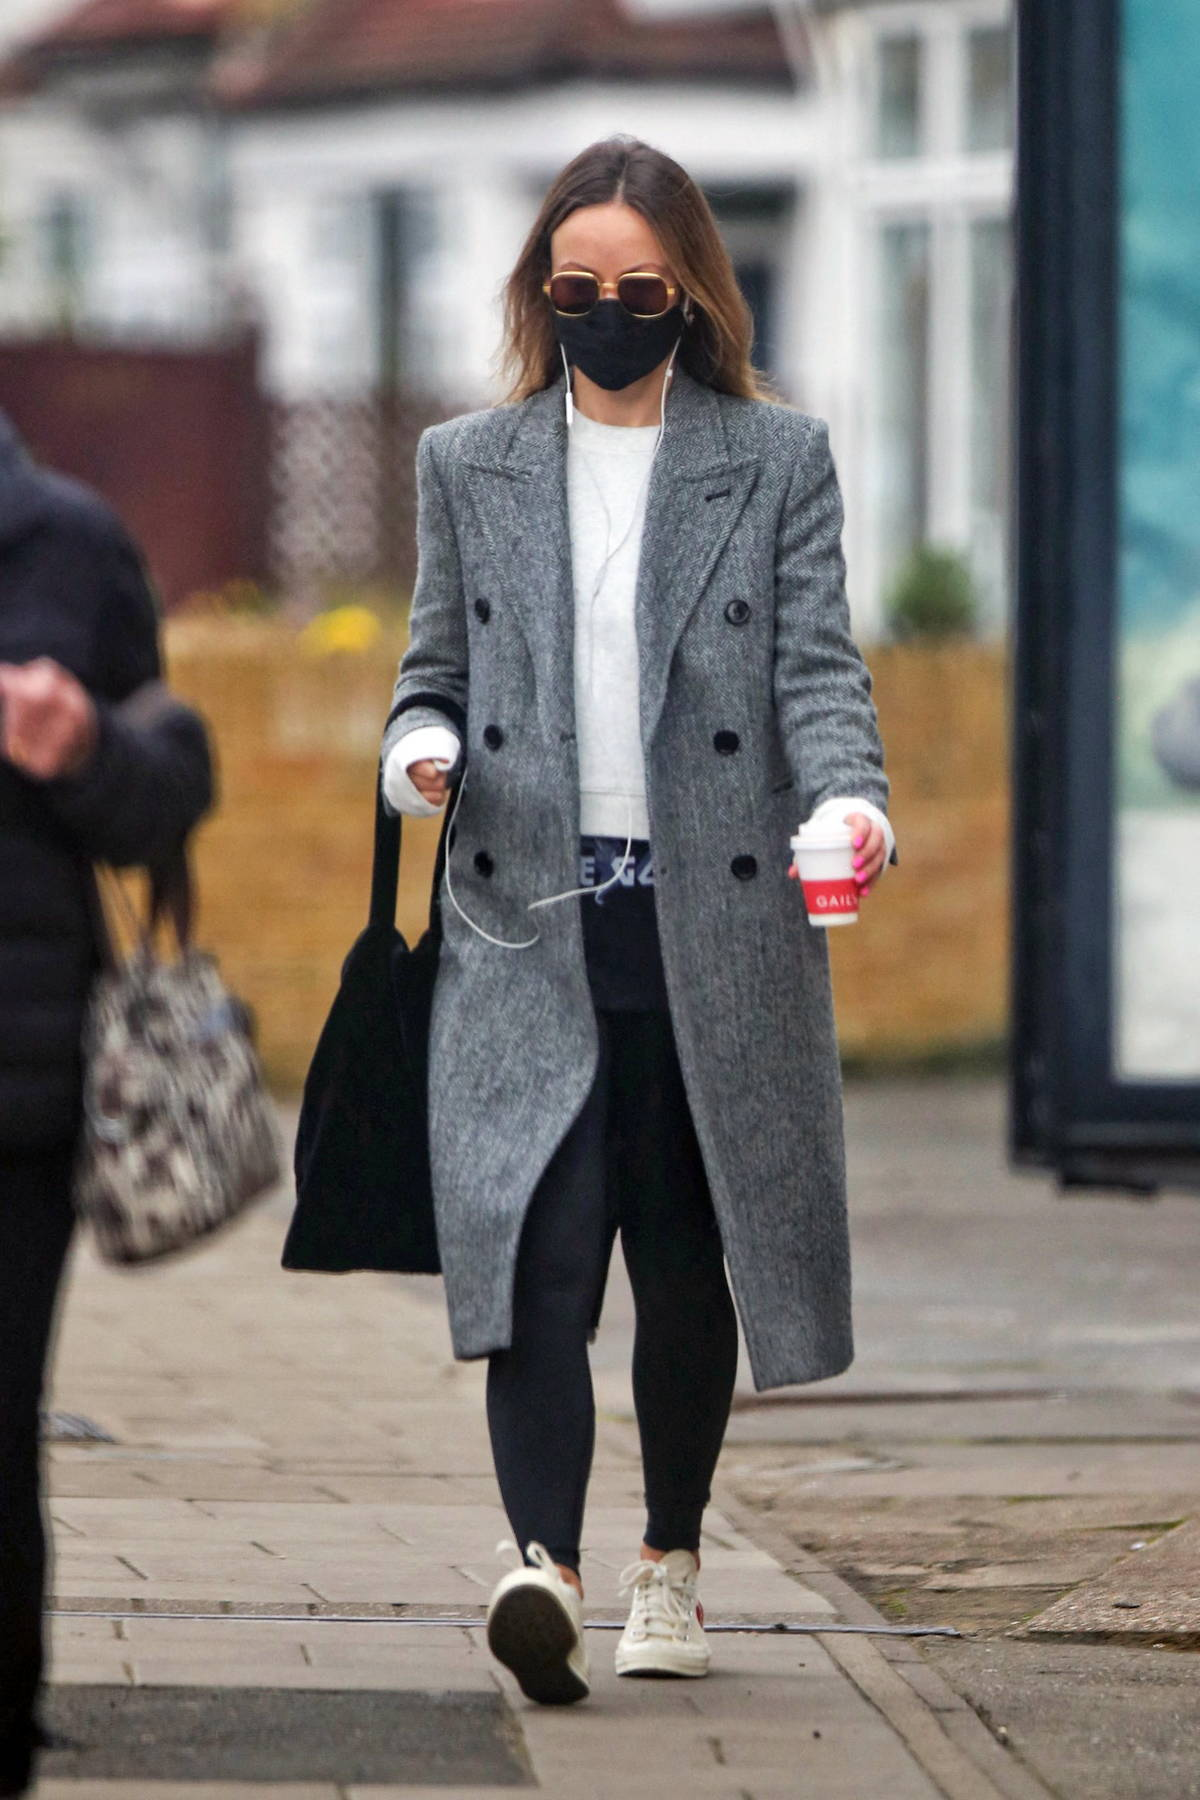 Olivia Wilde stays warm in a grey overcoat and leggings while making her morning coffee run in London, UK